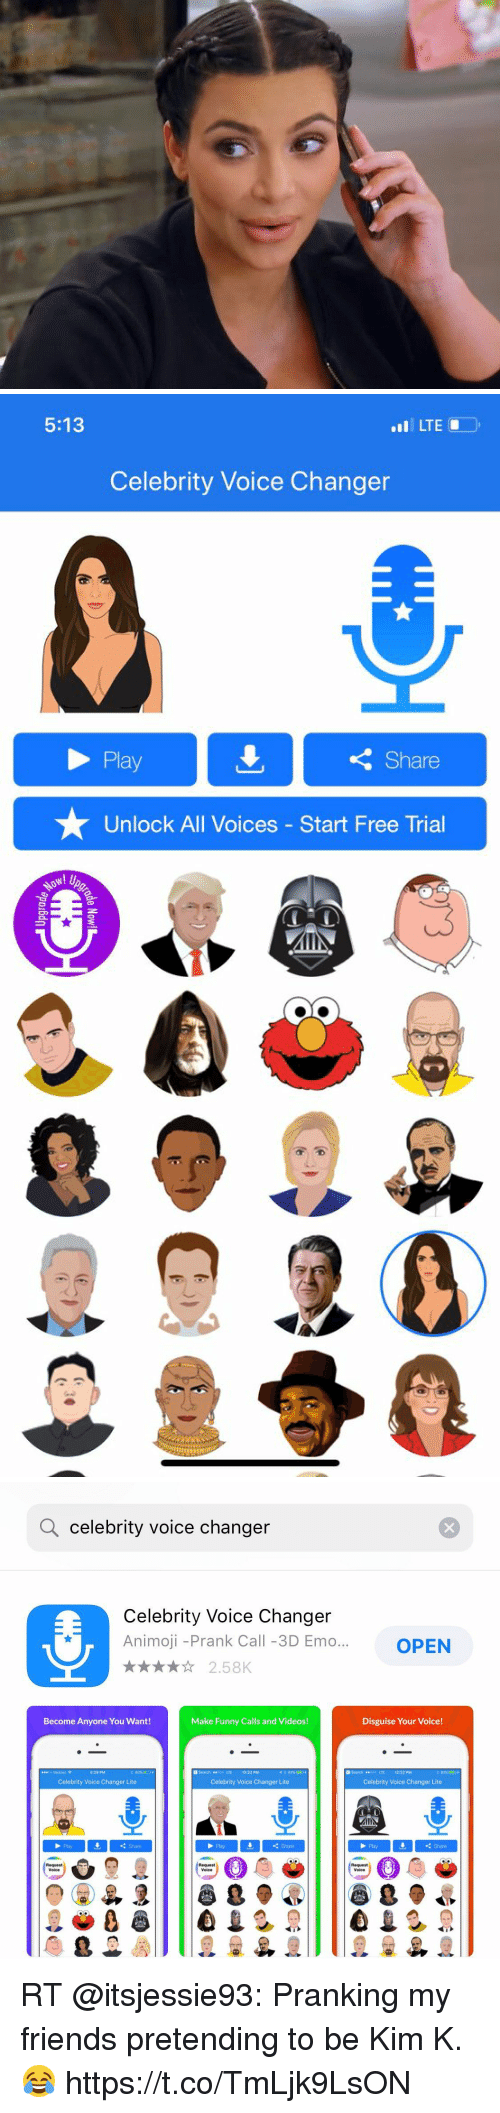 All celebrity voices